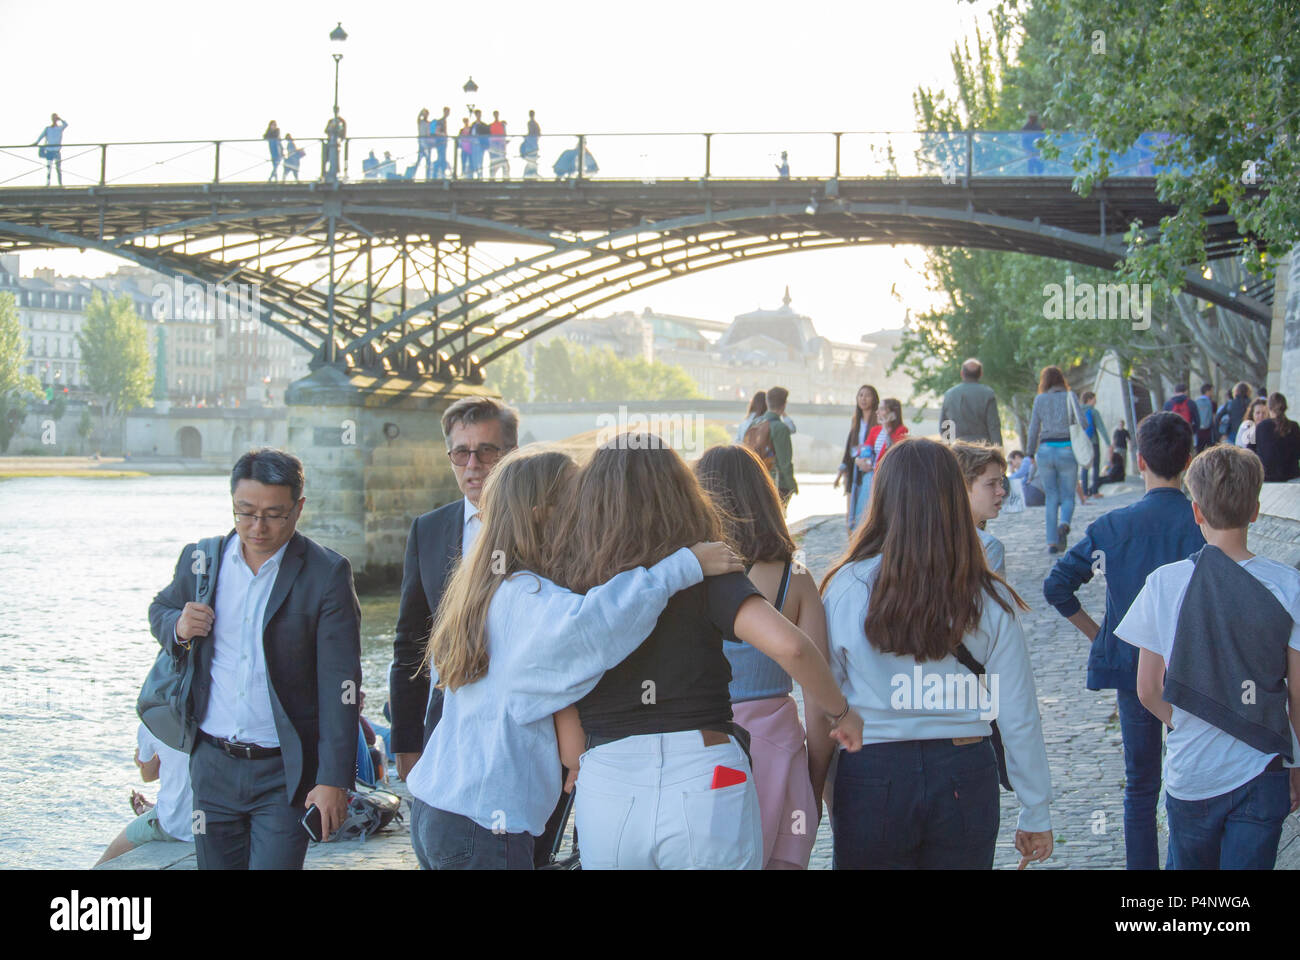 Paris, France, Young generation taking for a walk with a background of a bridge, Pont des Arts (Bridge of the Arts) - Stock Image